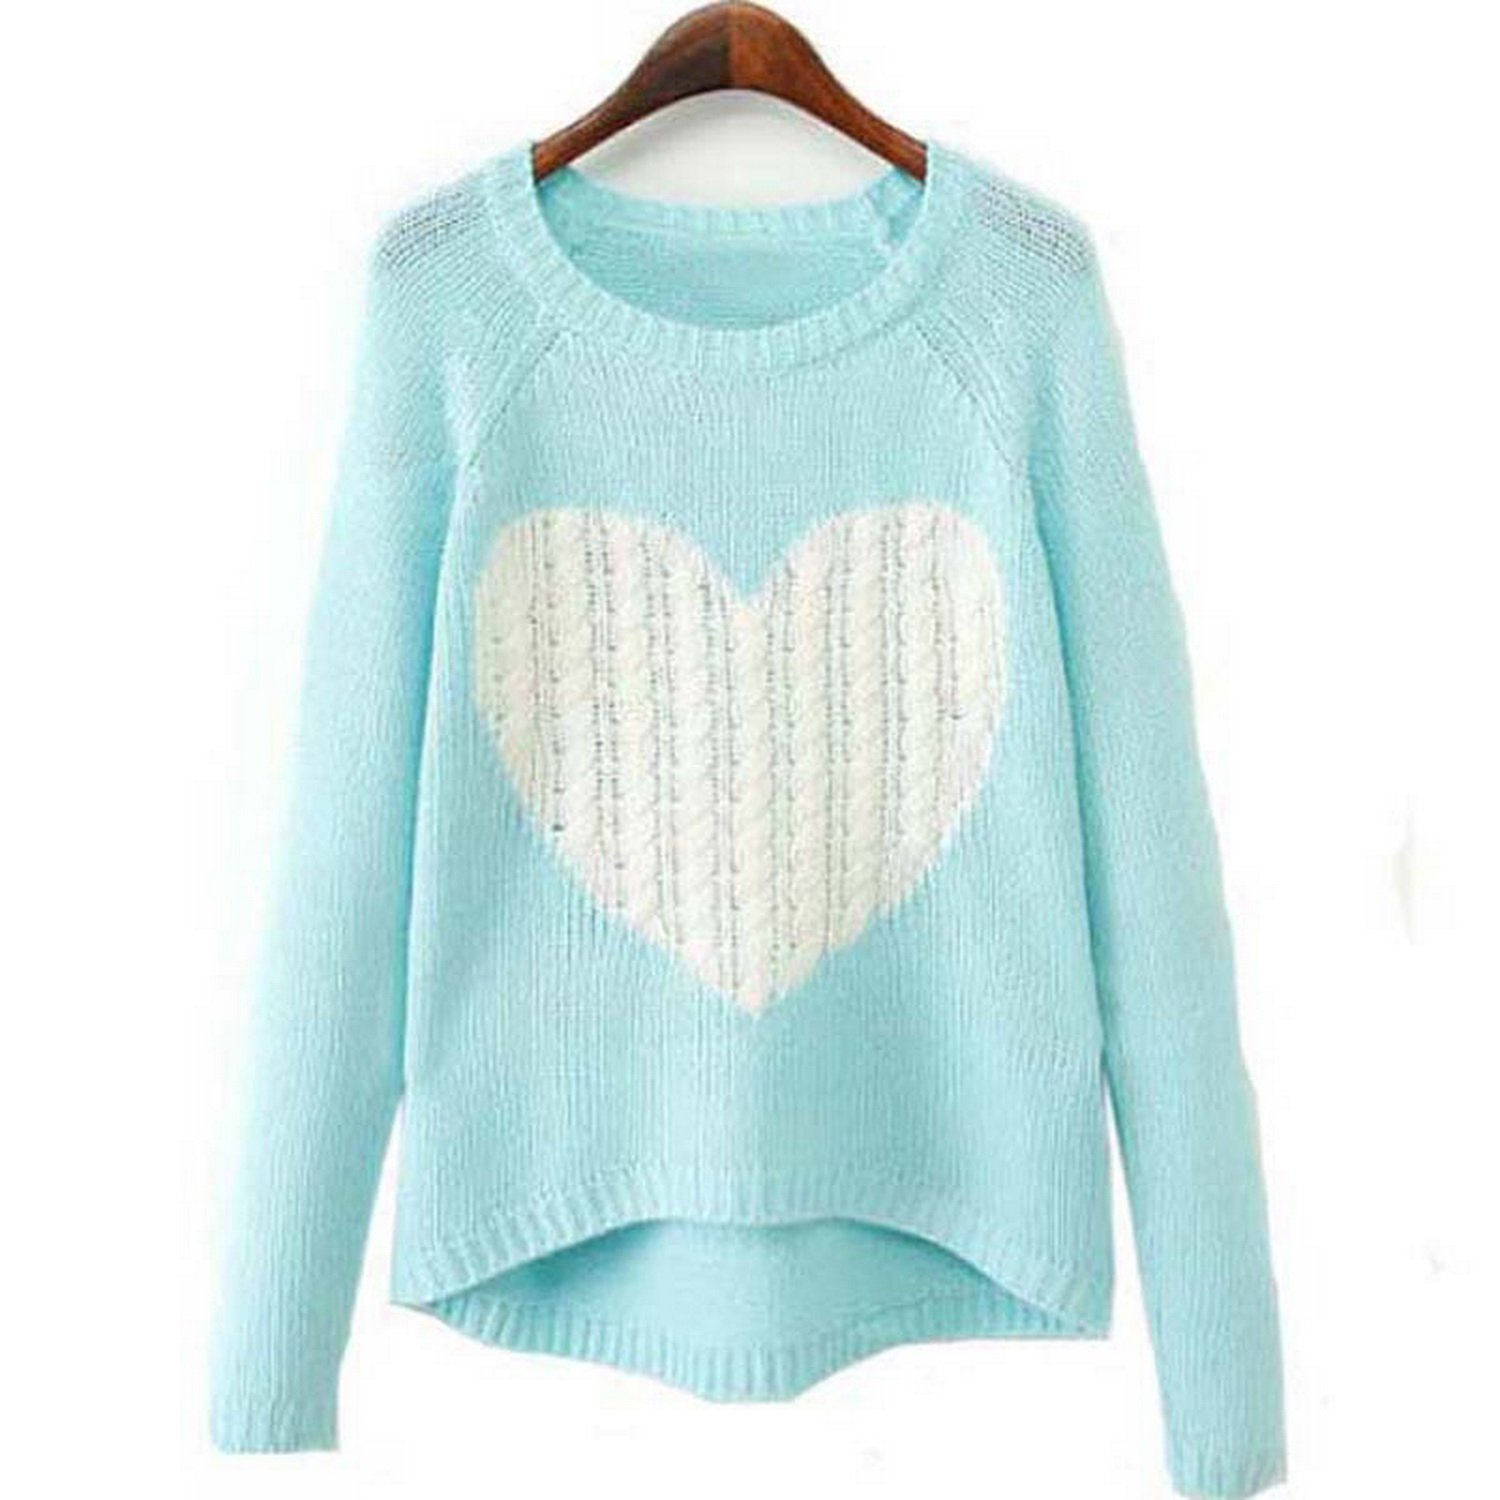 HGRA039 New Women Fashion Sweater Pullover Knitting casual